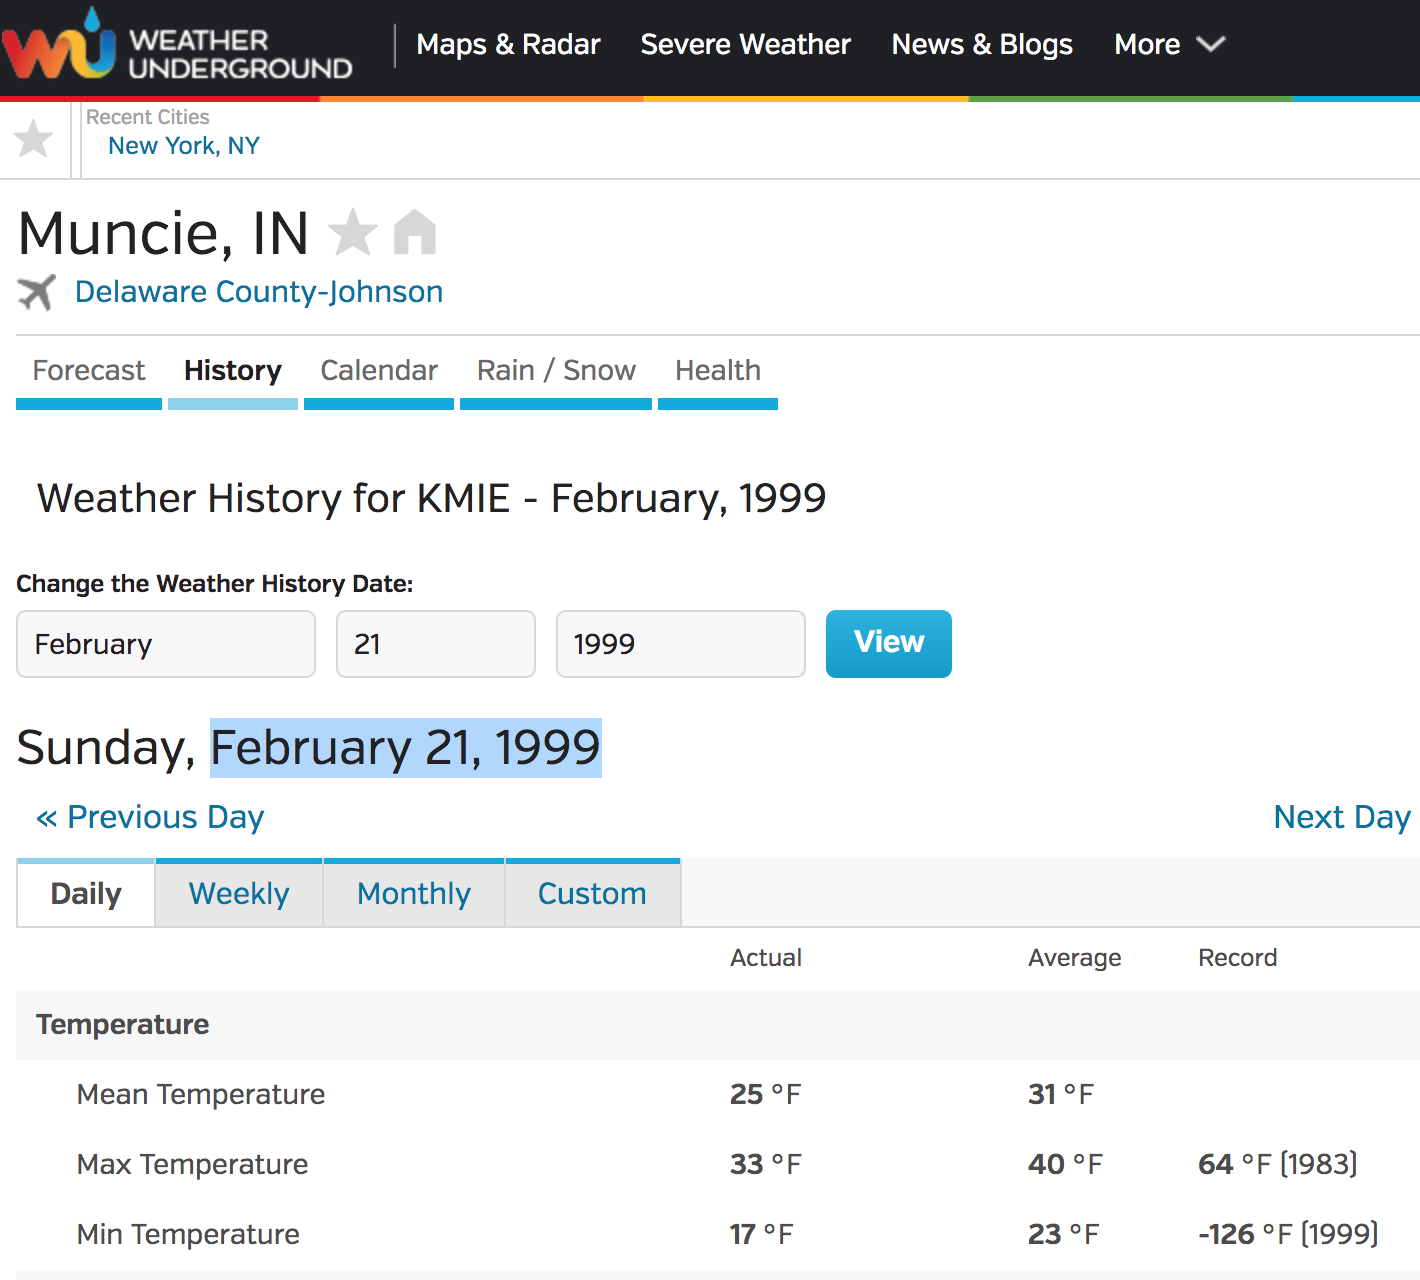 weather underground screen shot for weather in Muncie, Indiana on February 21, 1999 showing a record low of -126